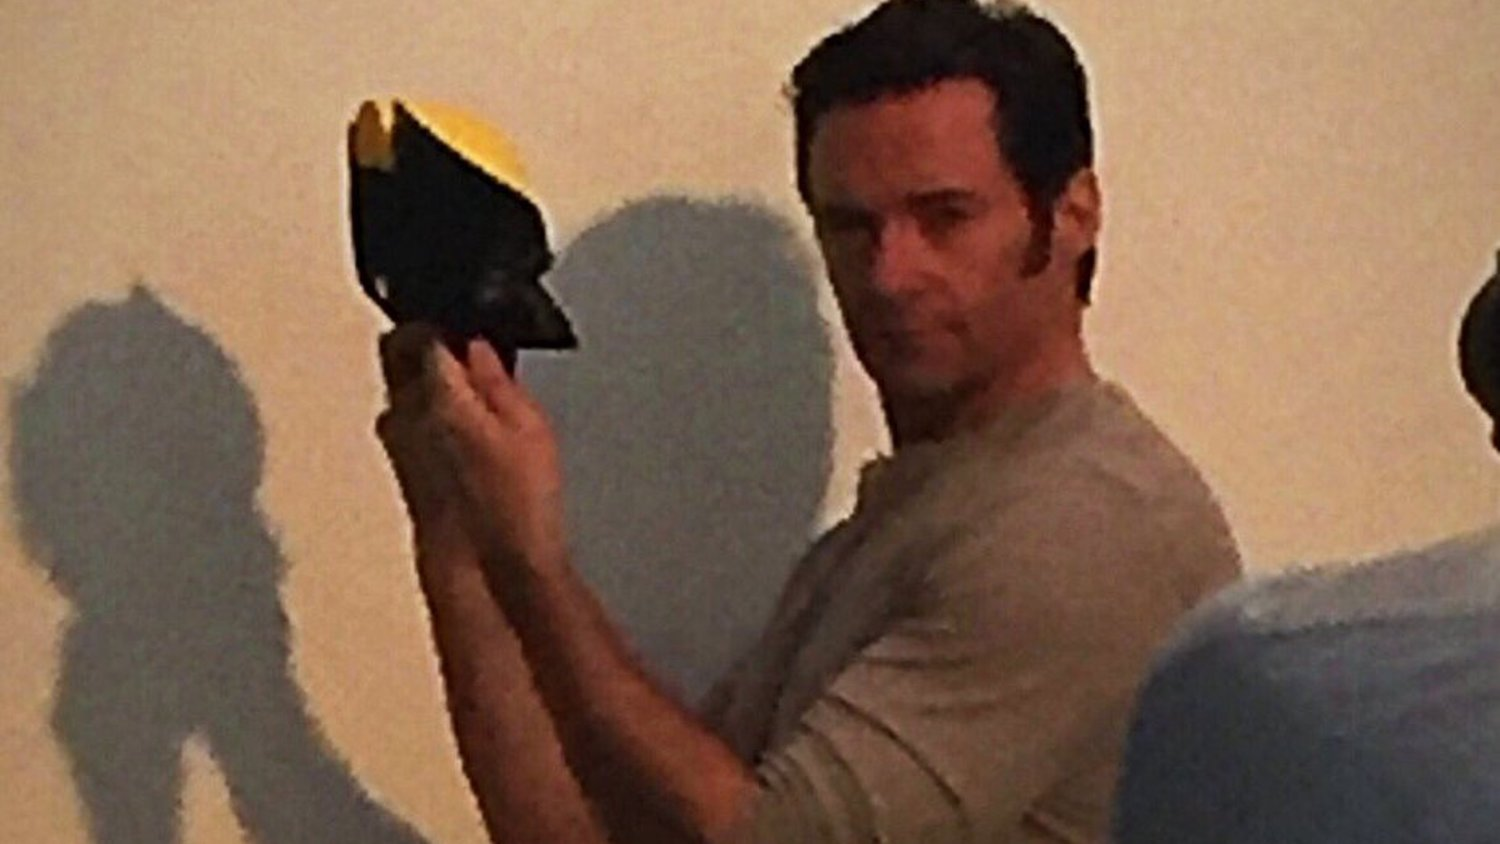 Hugh Jackman Poses with the Classic Wolverine Mask That He Never Wore in the Films